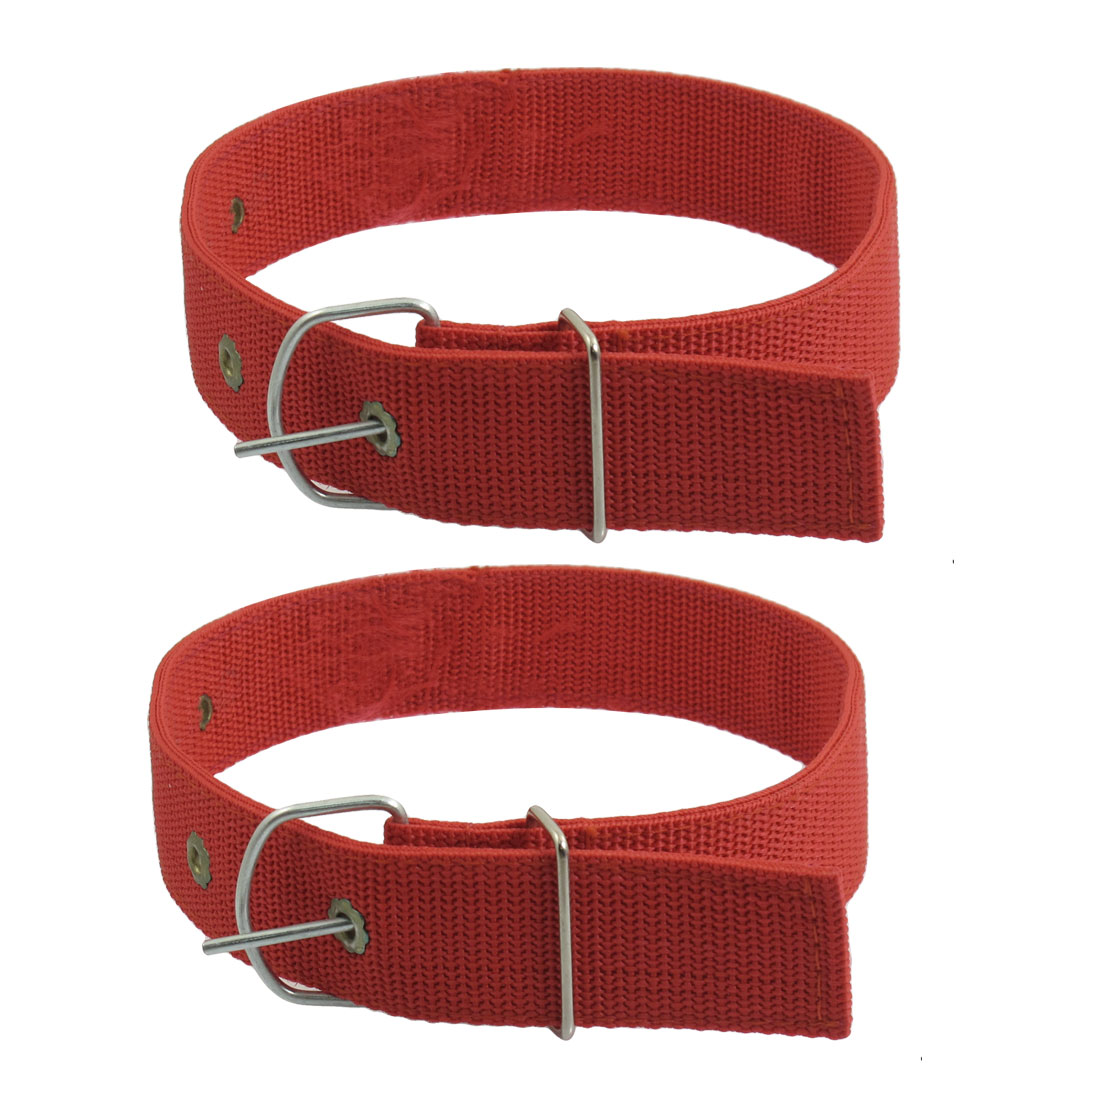 2 Pcs Red Textured Fabric Rope Leash Collar for Pet Dog